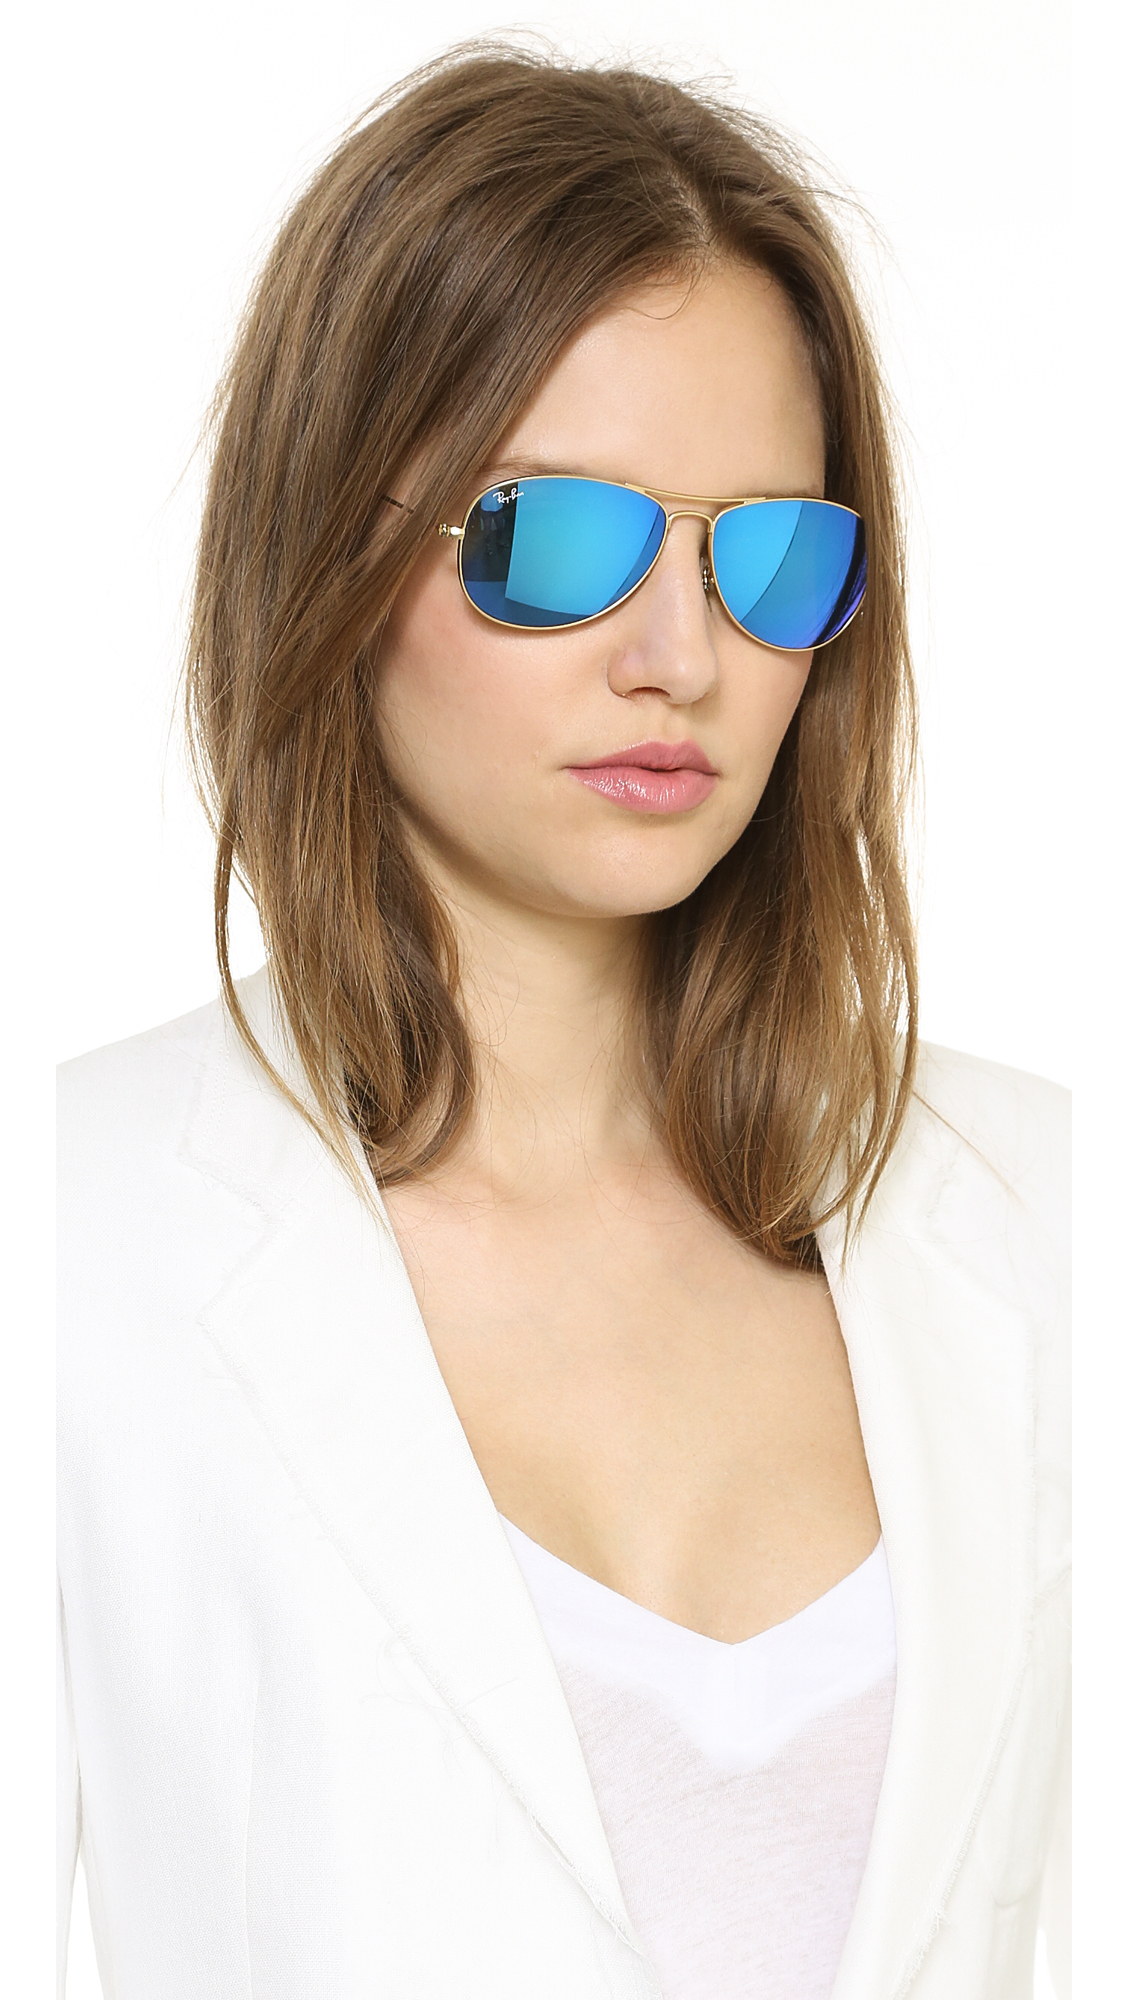 Ray Ban Mirrored Shrunken Aviator Sunglasses In Blue